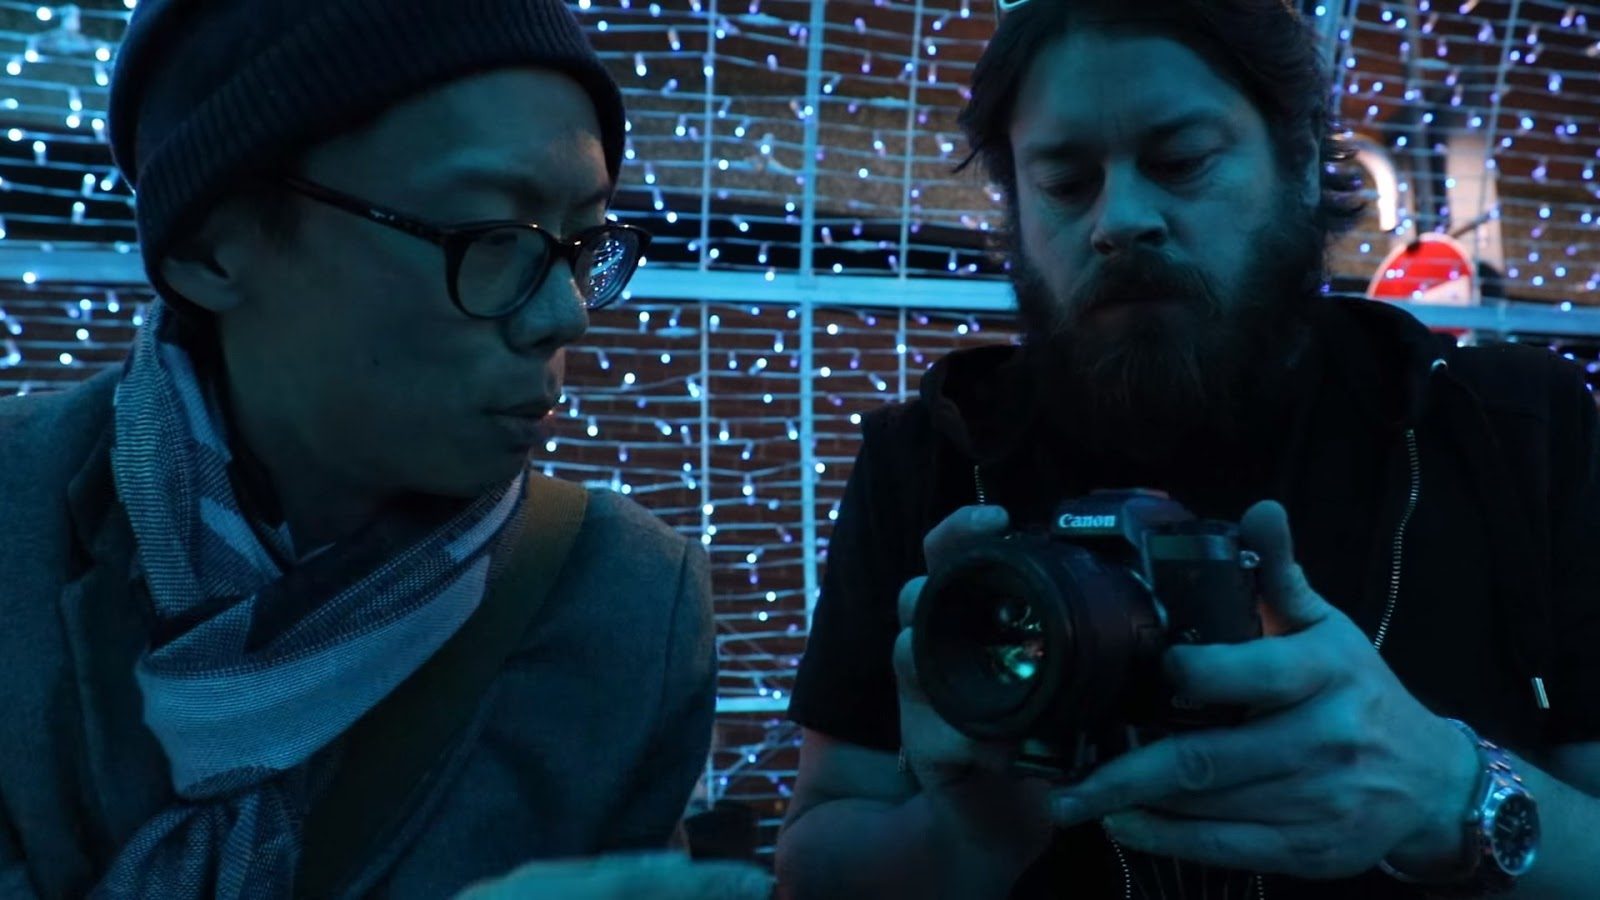 Canon EOS M5 Hands-on Review